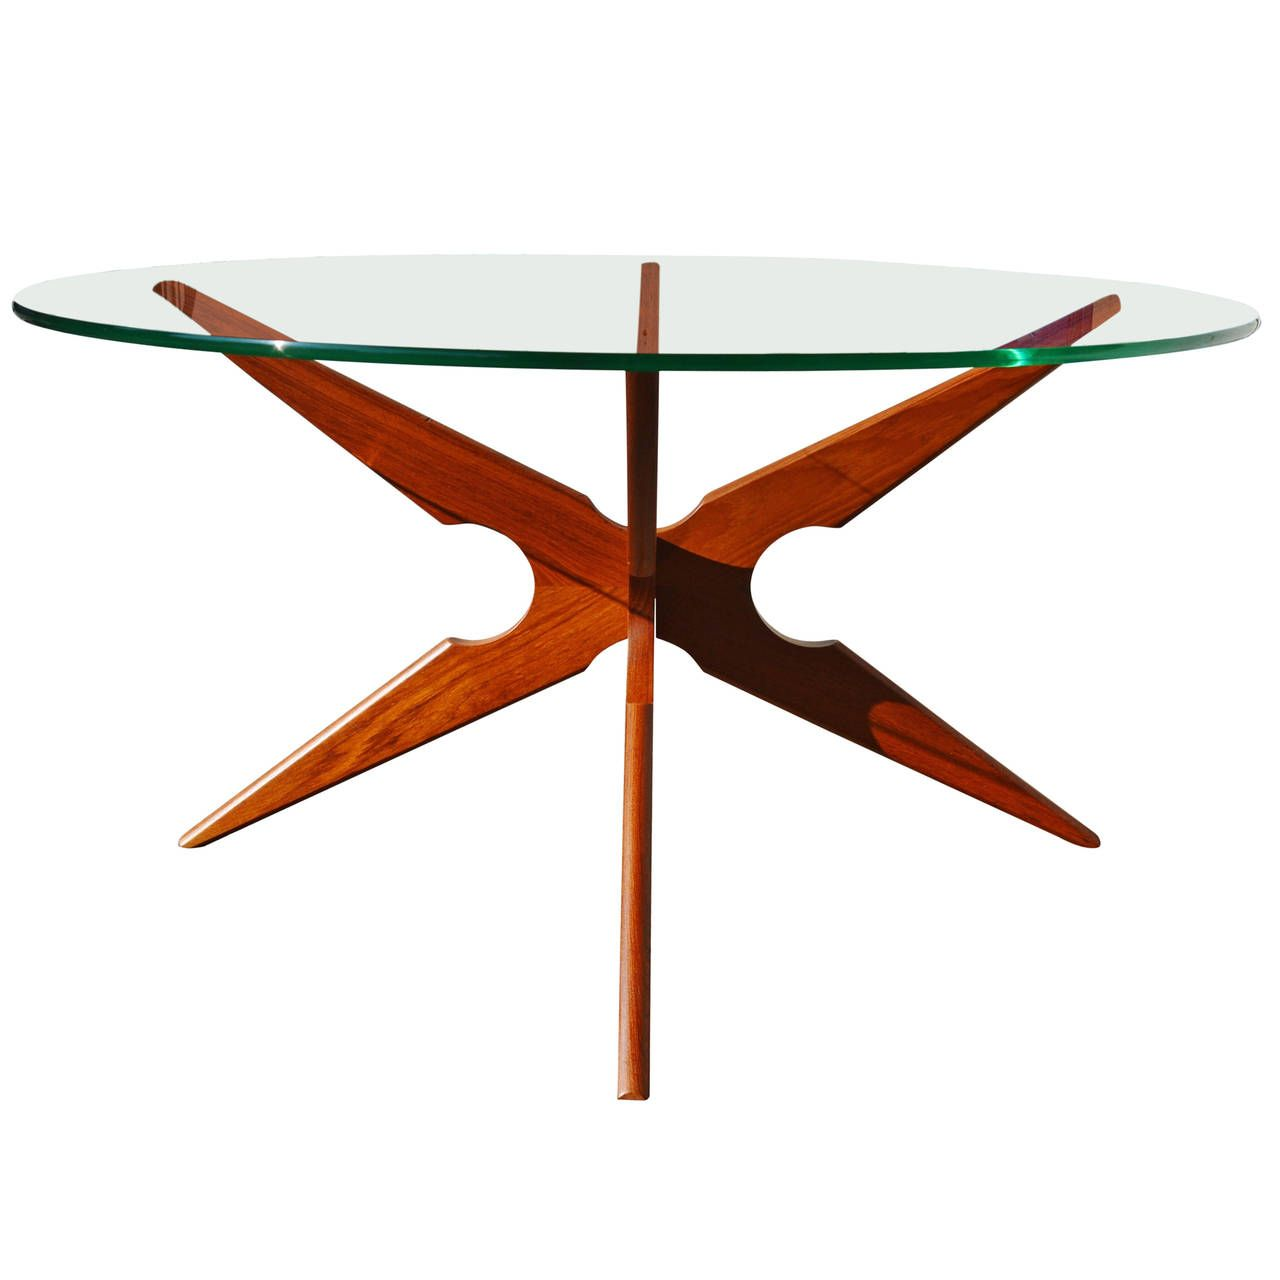 Danish teak spider leg coffee table round glass top sike mobler